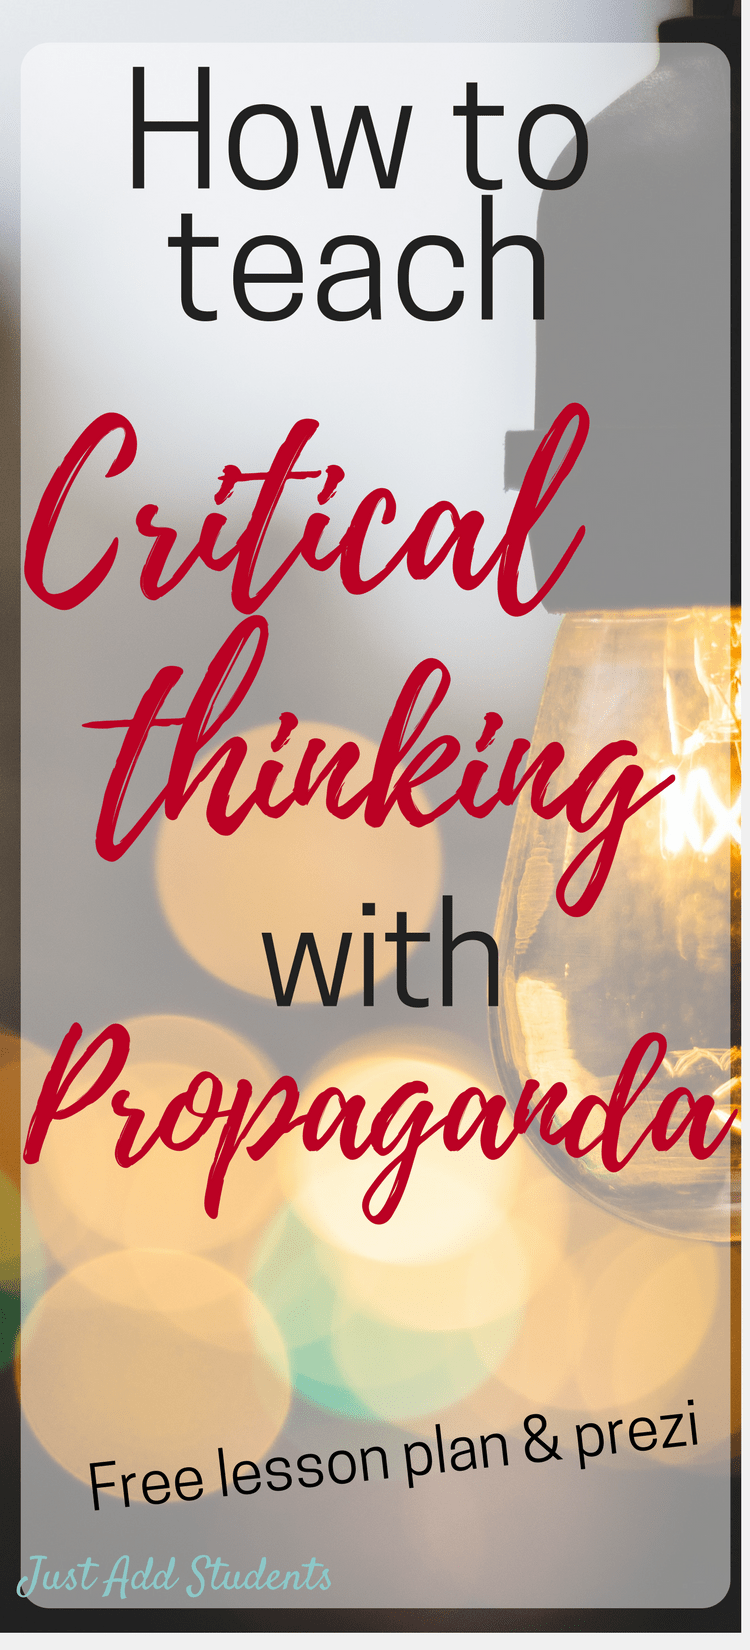 lesson plans for teaching critical thinking skills